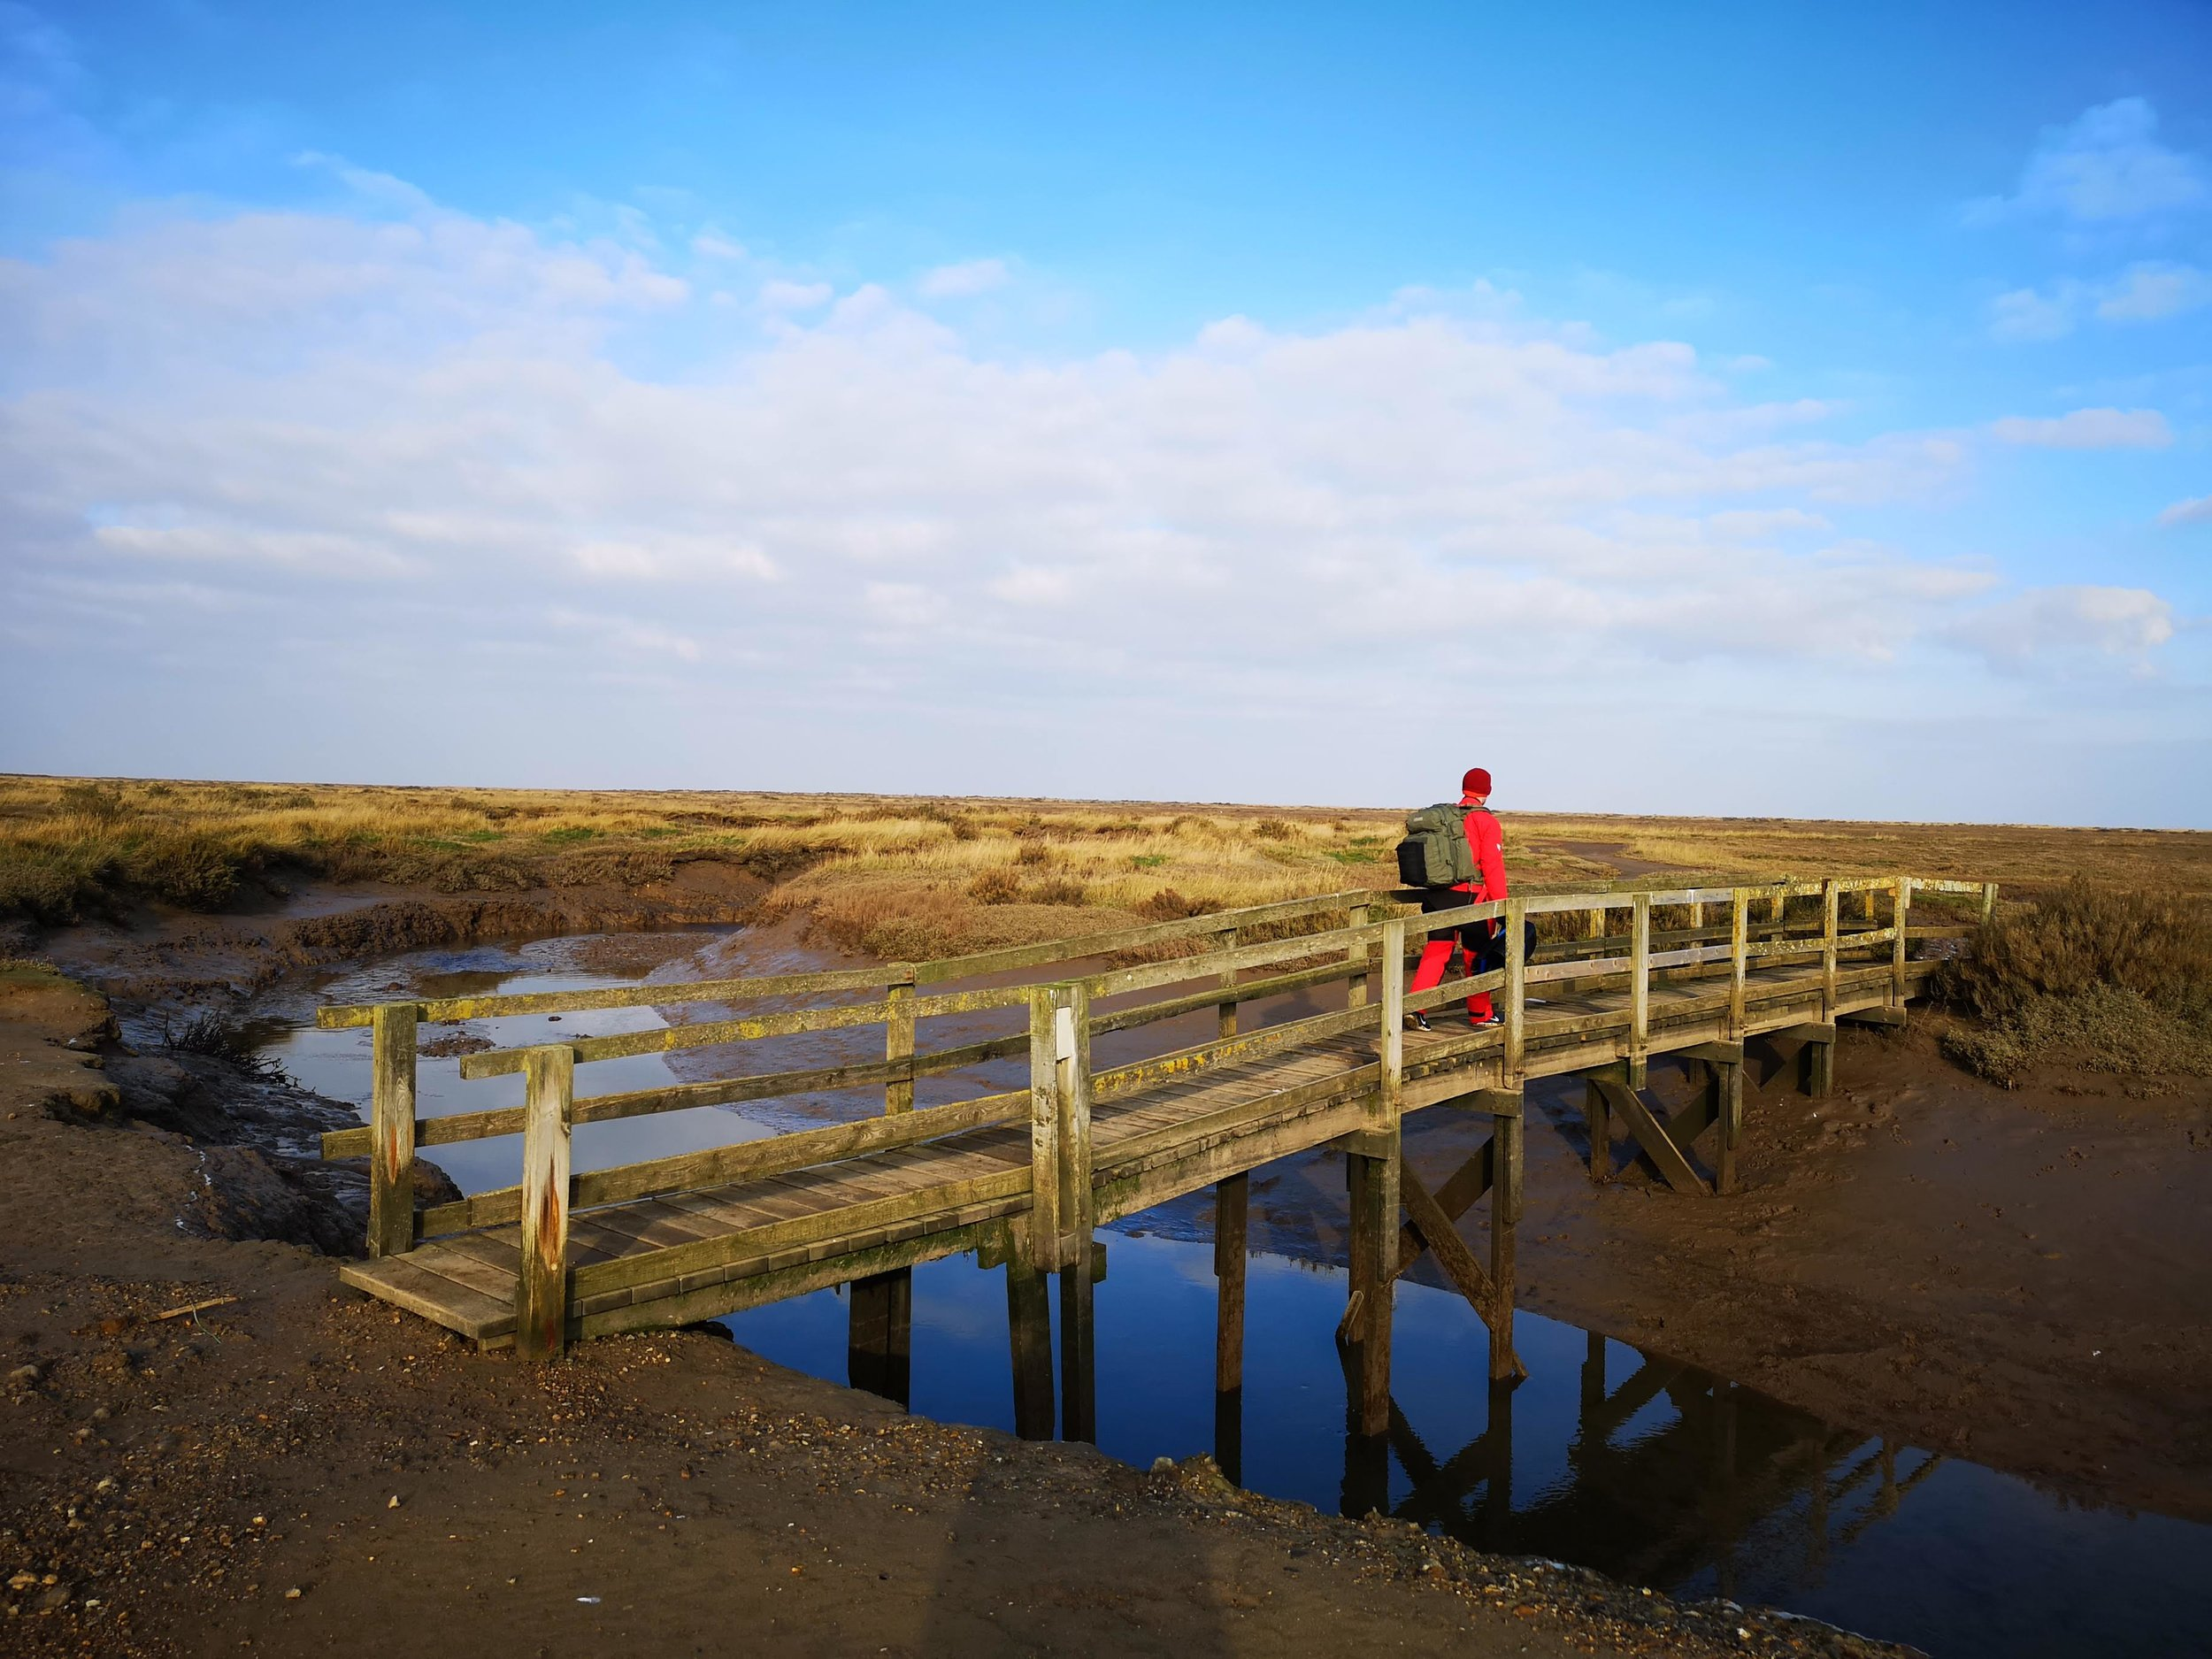 The footbridge over Cabbage Creek, Stiffkey Marshes. We visited in January when the temperature hovered around zero and ice still coated much of the ground.